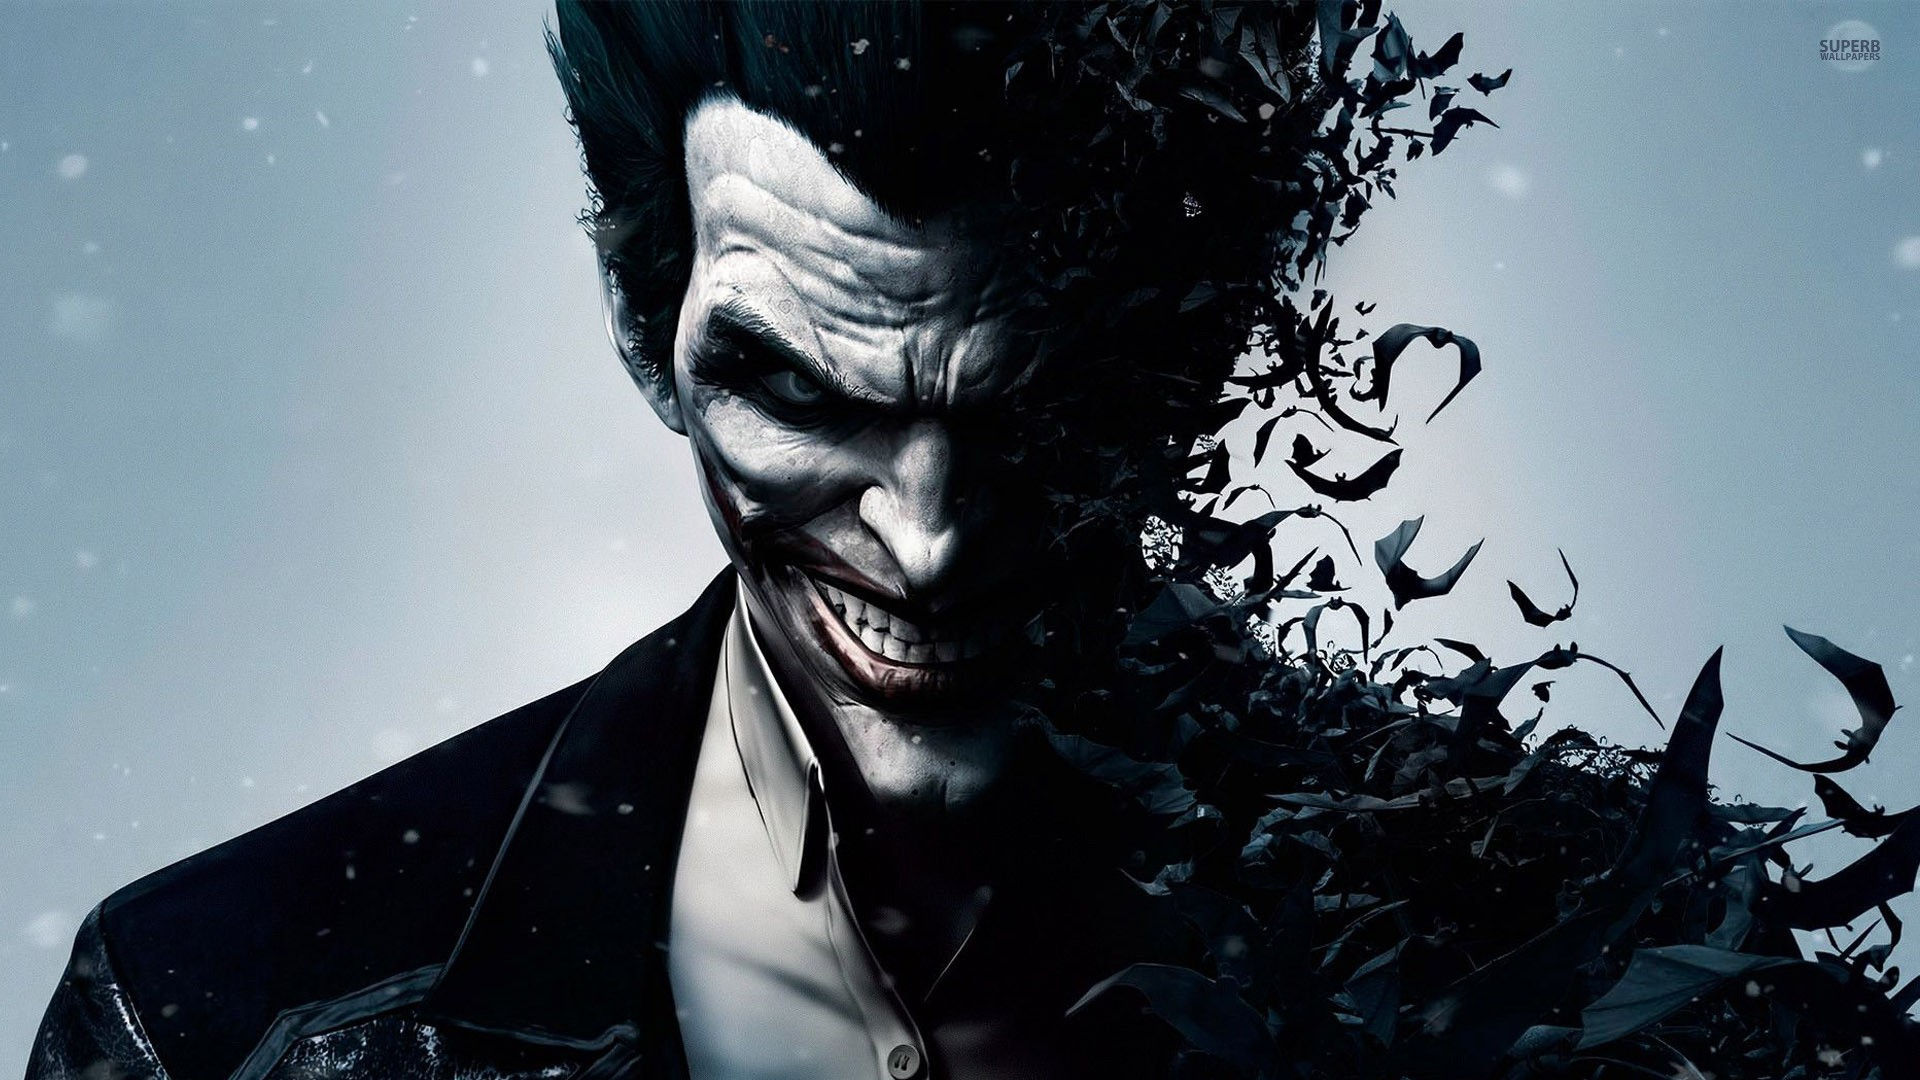 Joker Background Download Free Awesome Full Hd Backgrounds For